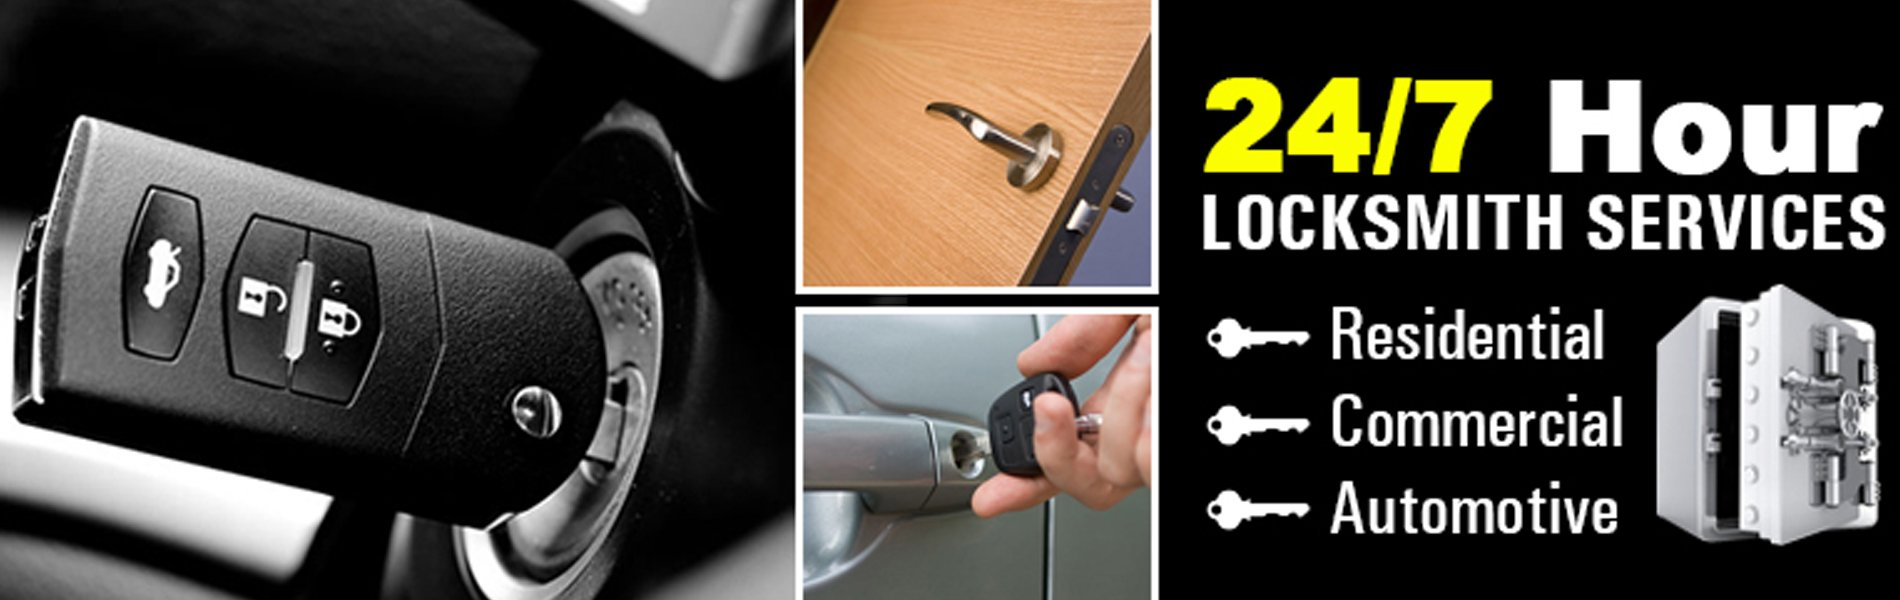 Buena Vista Heights Locksmith Store, Buena Vista Heights, TN 615-505-1052